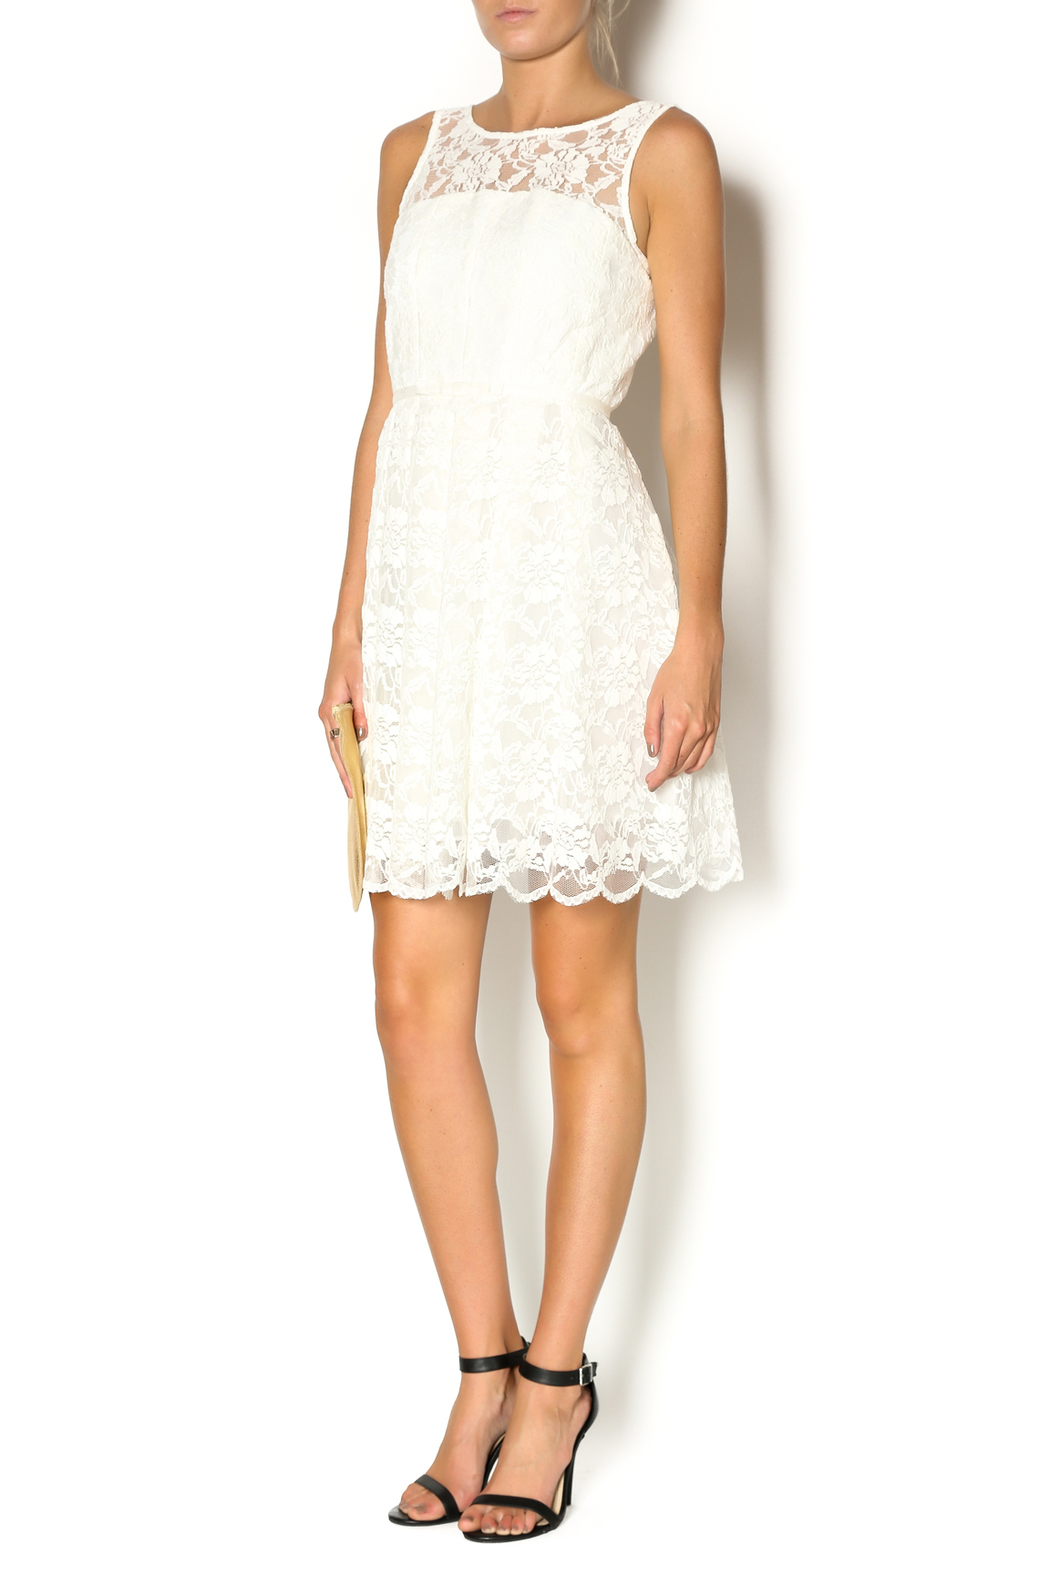 4691ef278a Minuet White Lace Sundress from California by Little Black Dress ...